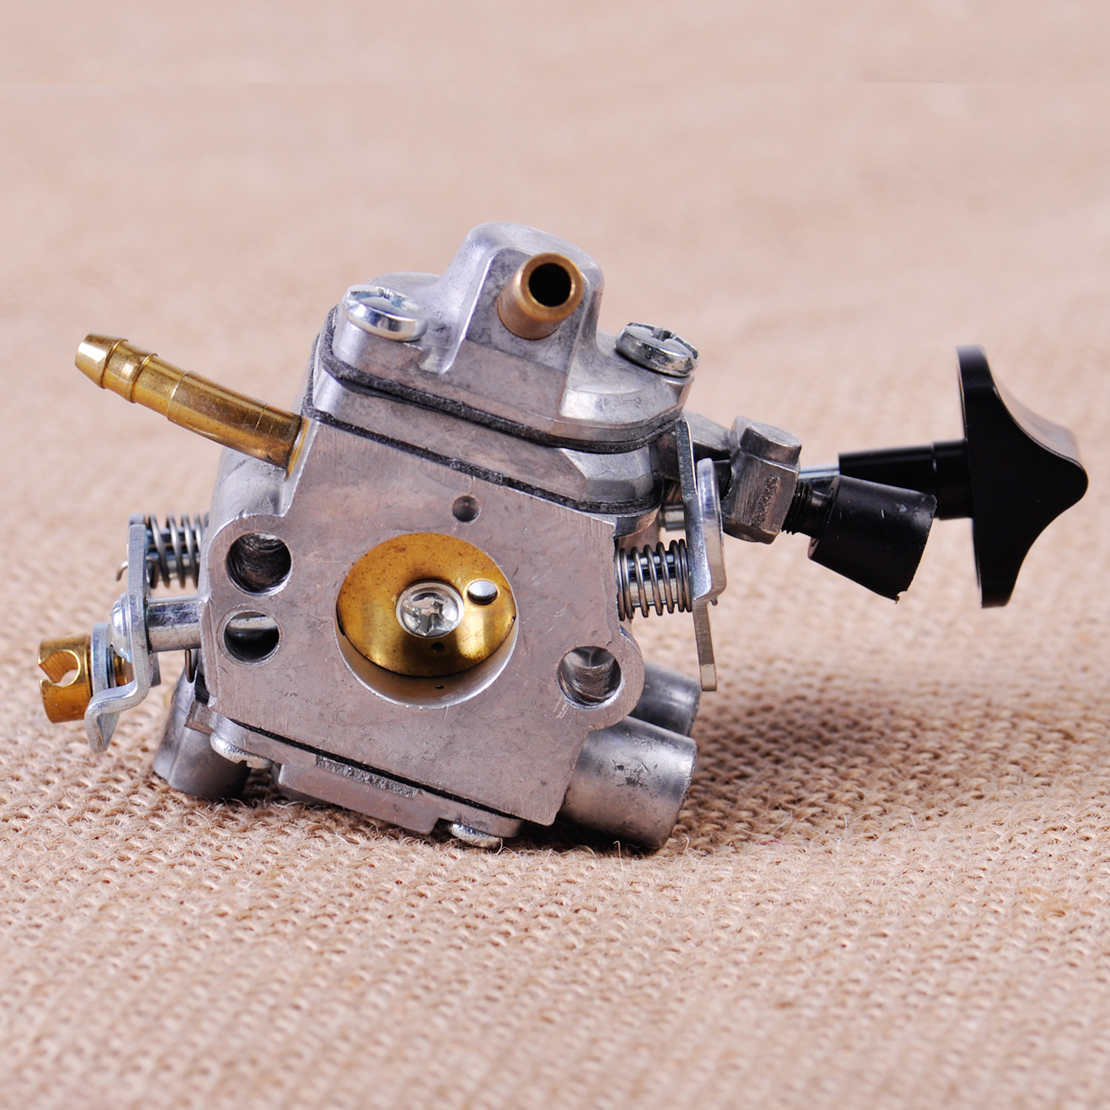 LETAOSK Carburetor Carb For Stihl BR500 BR550 BR600 Backpack Blower C1Q-S183